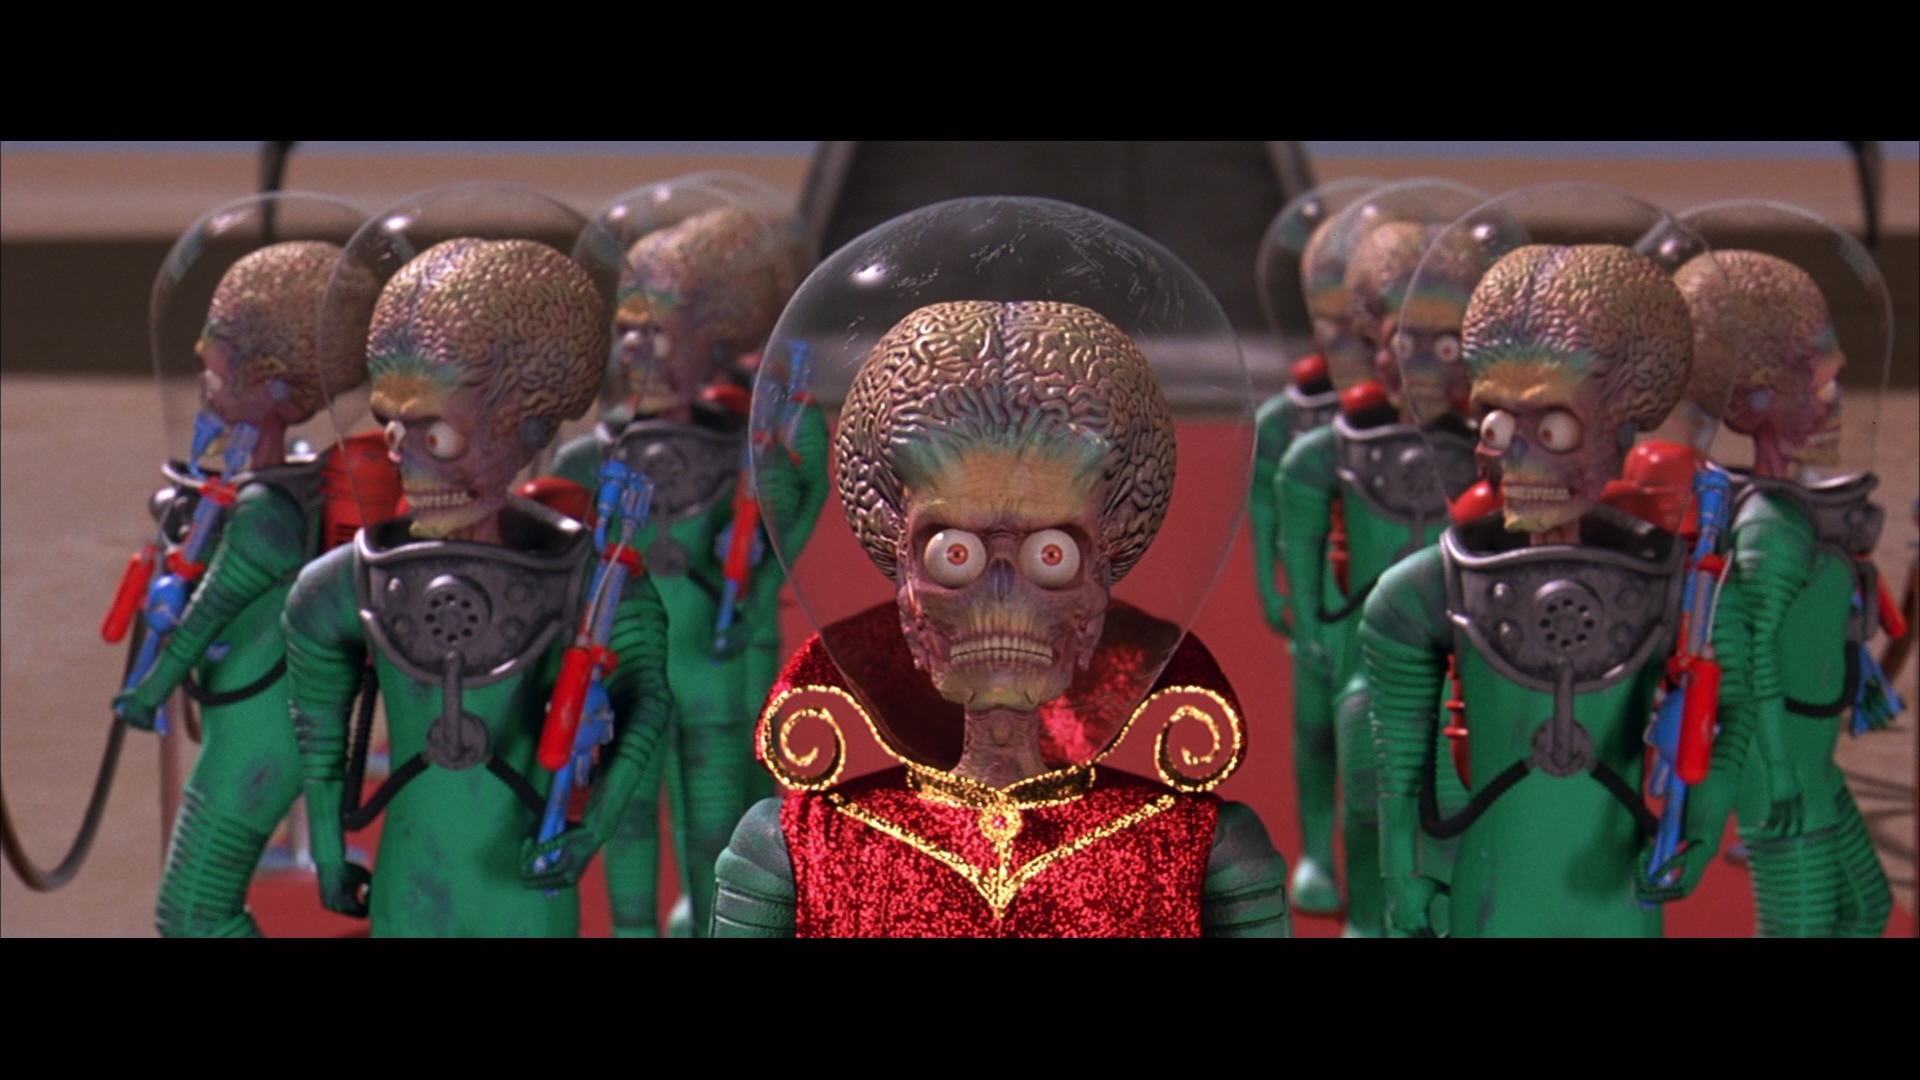 Mars Attacks Hd Wallpaper Background Image 1920x1080